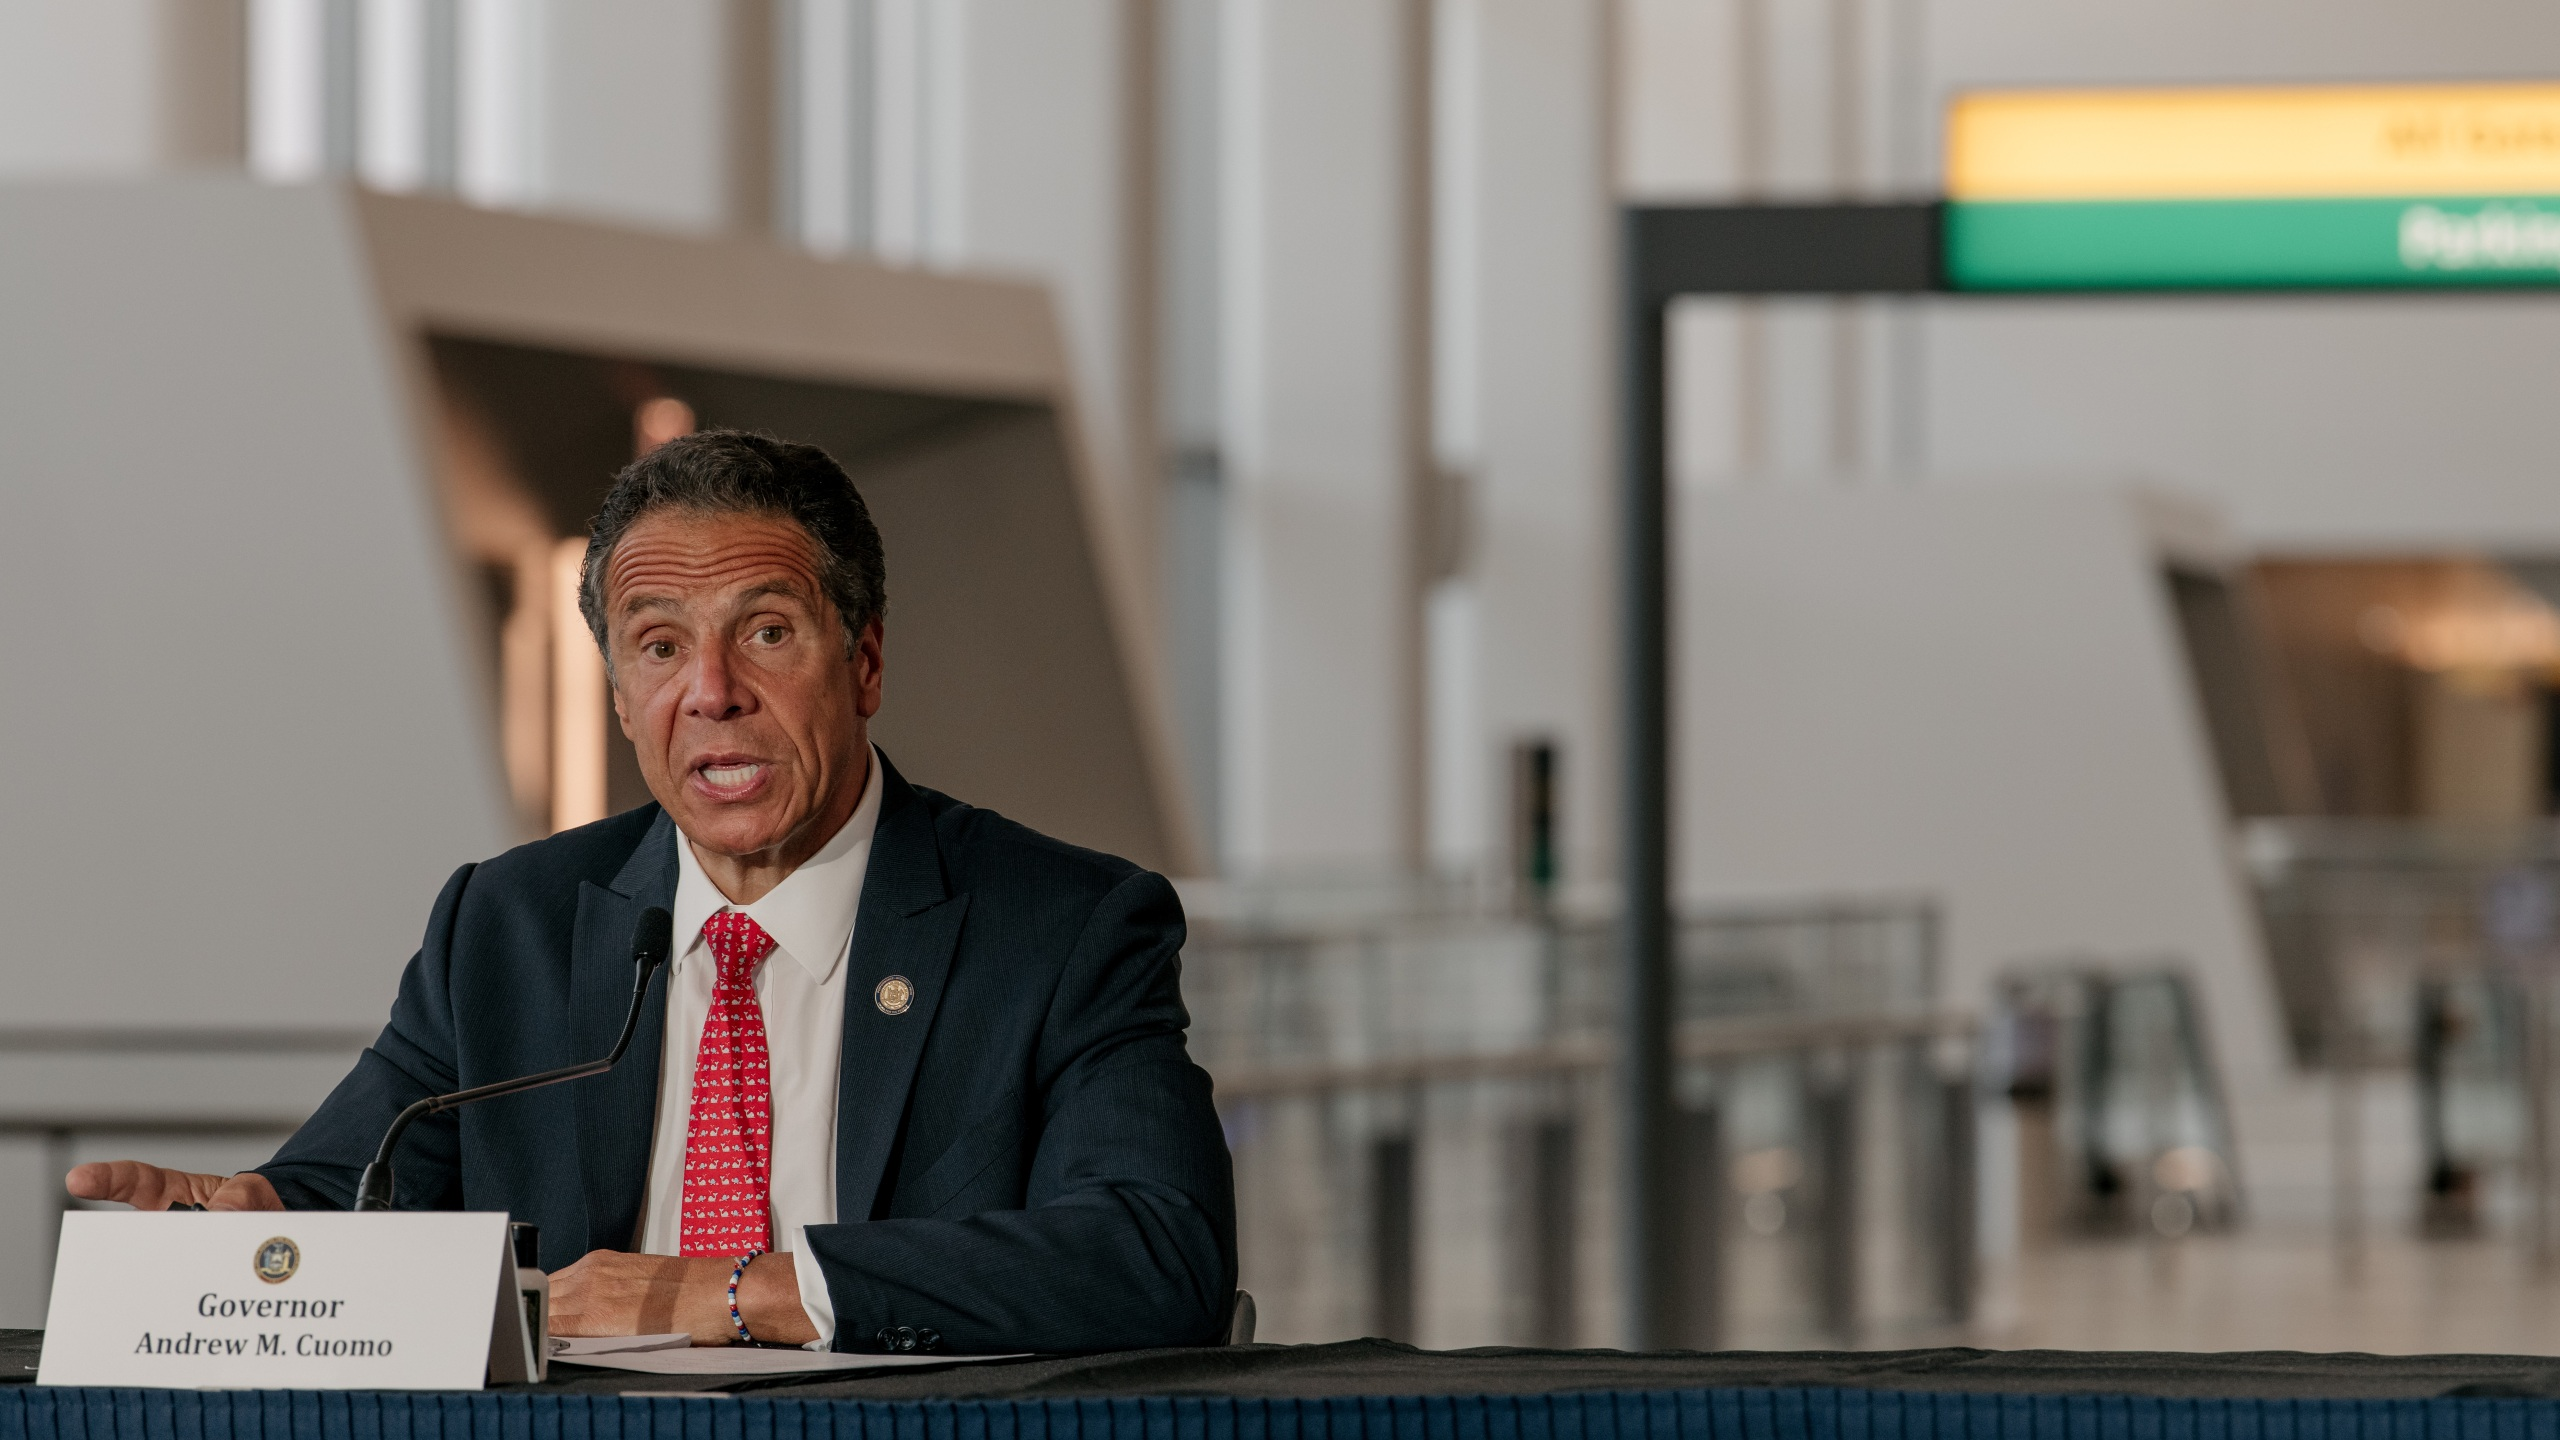 New York Gov. Andrew Cuomo speaks at a press conference held in LaGuardia Airport's new Terminal B on June 10, 2020 in New York City. (Scott Heins/Getty Images)